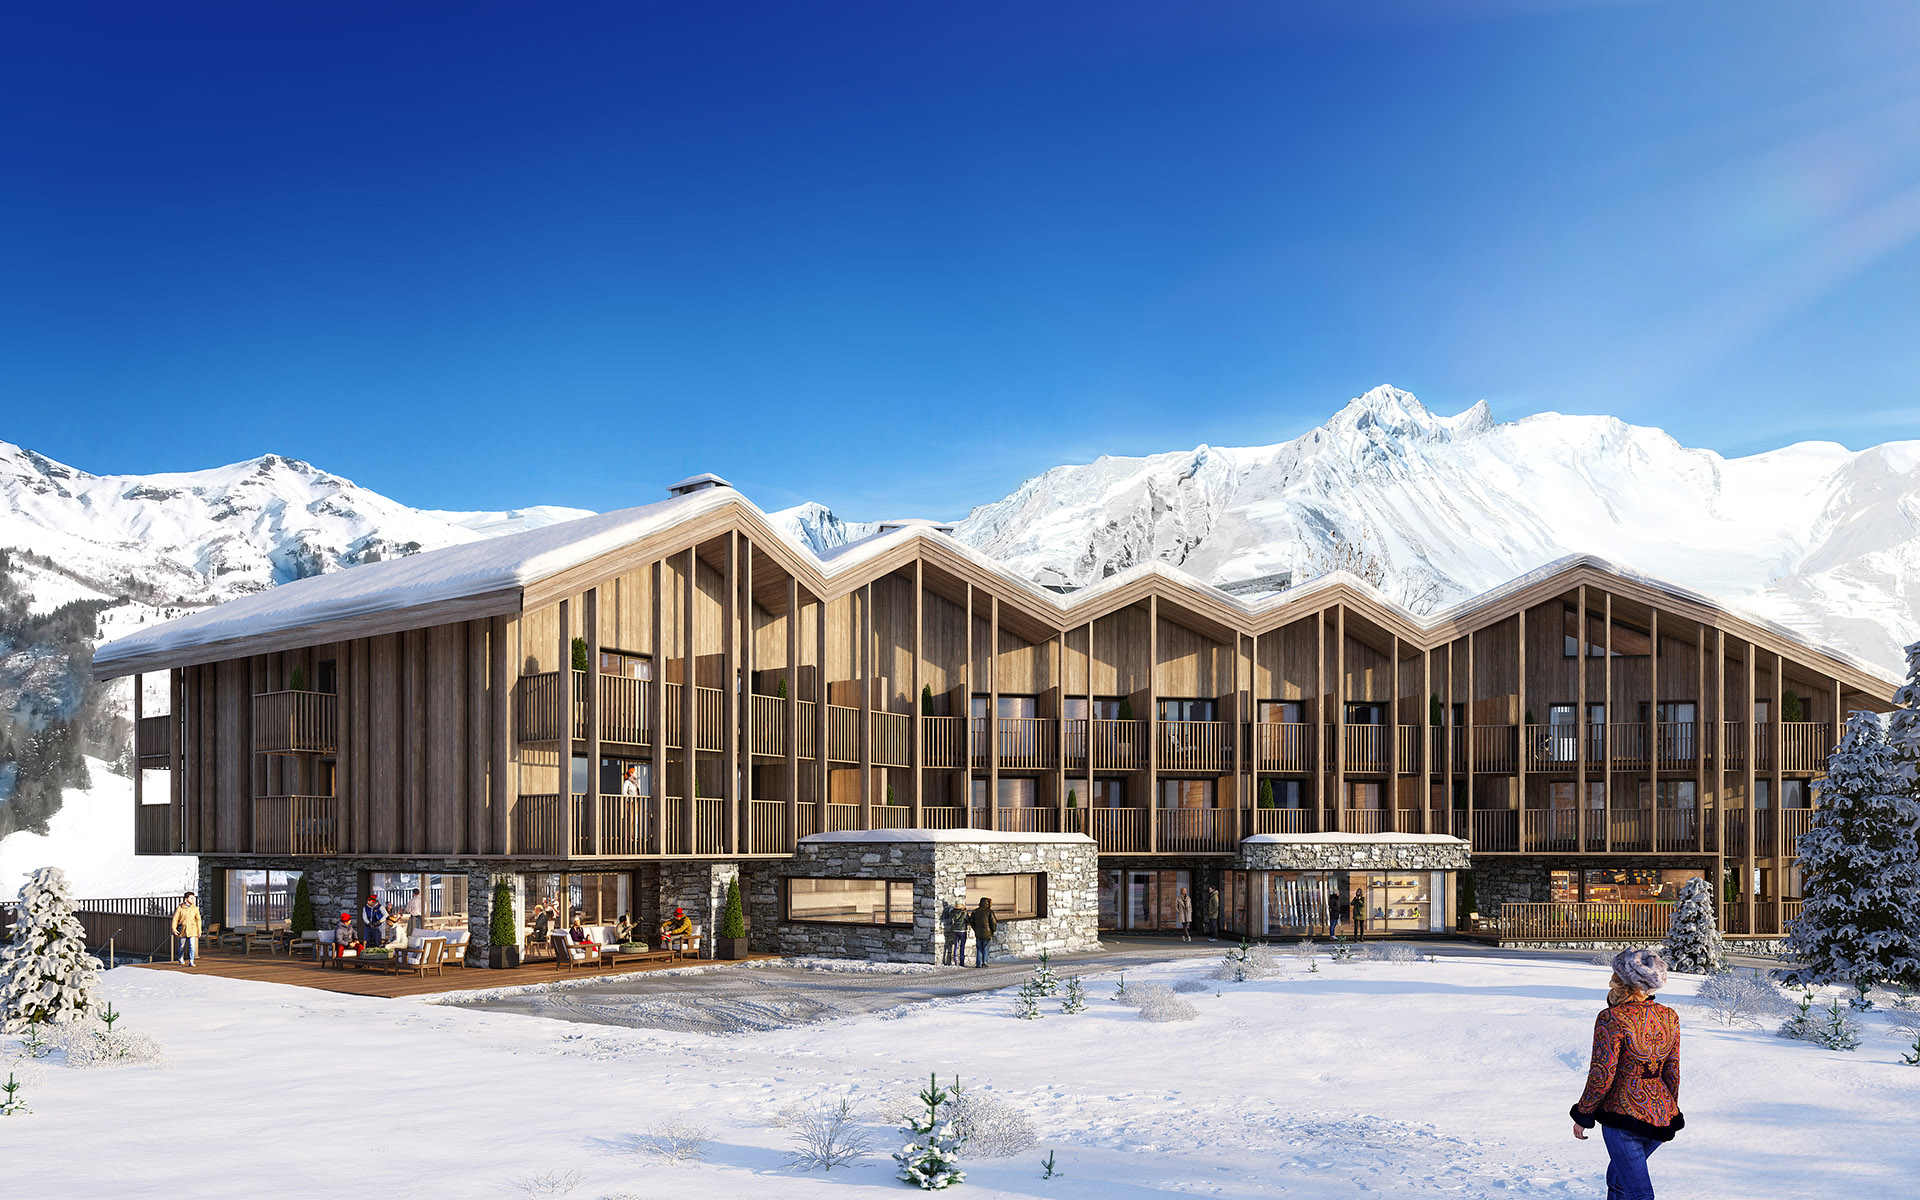 3D representation of the exterior of a chalet-type hotel